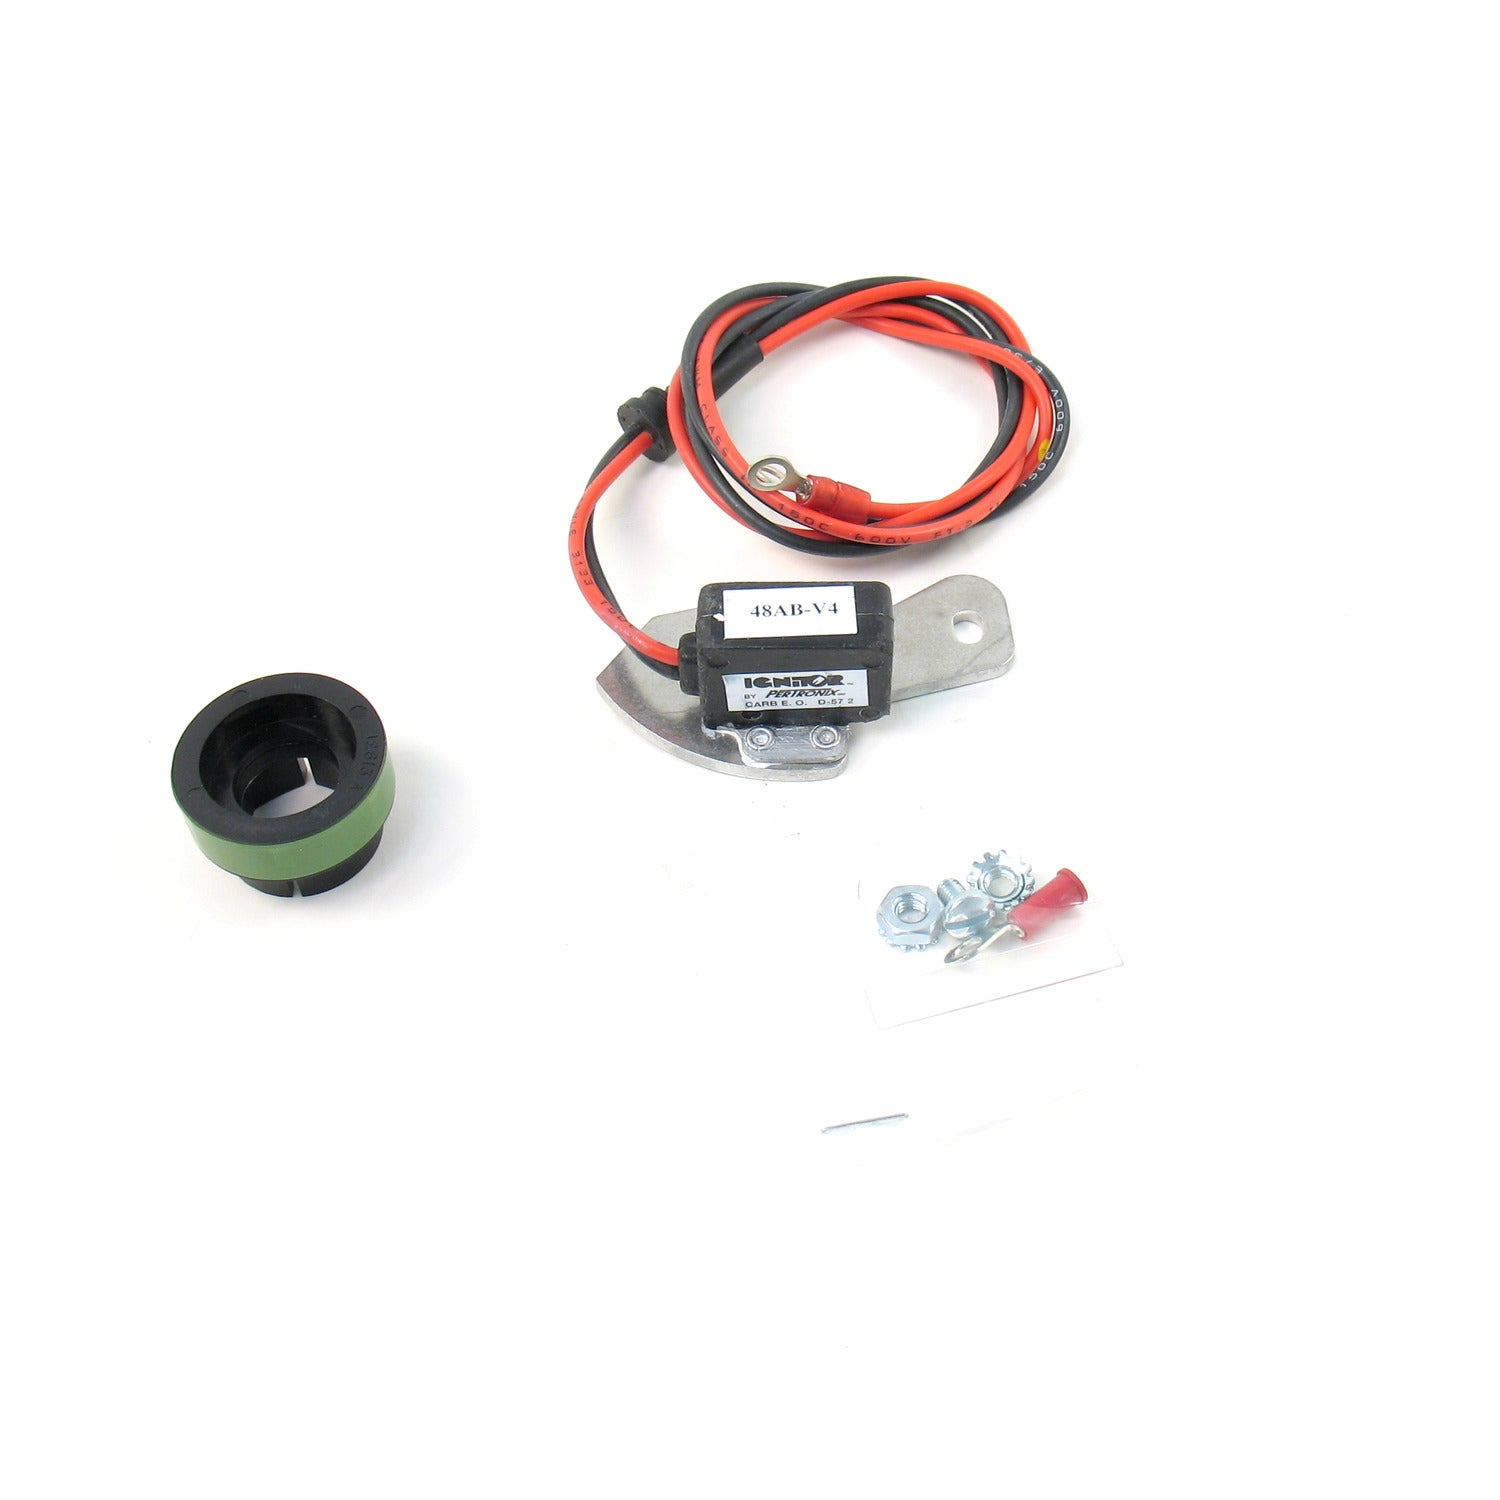 PerTronix 1261 Ignitor Ford 6 cyl